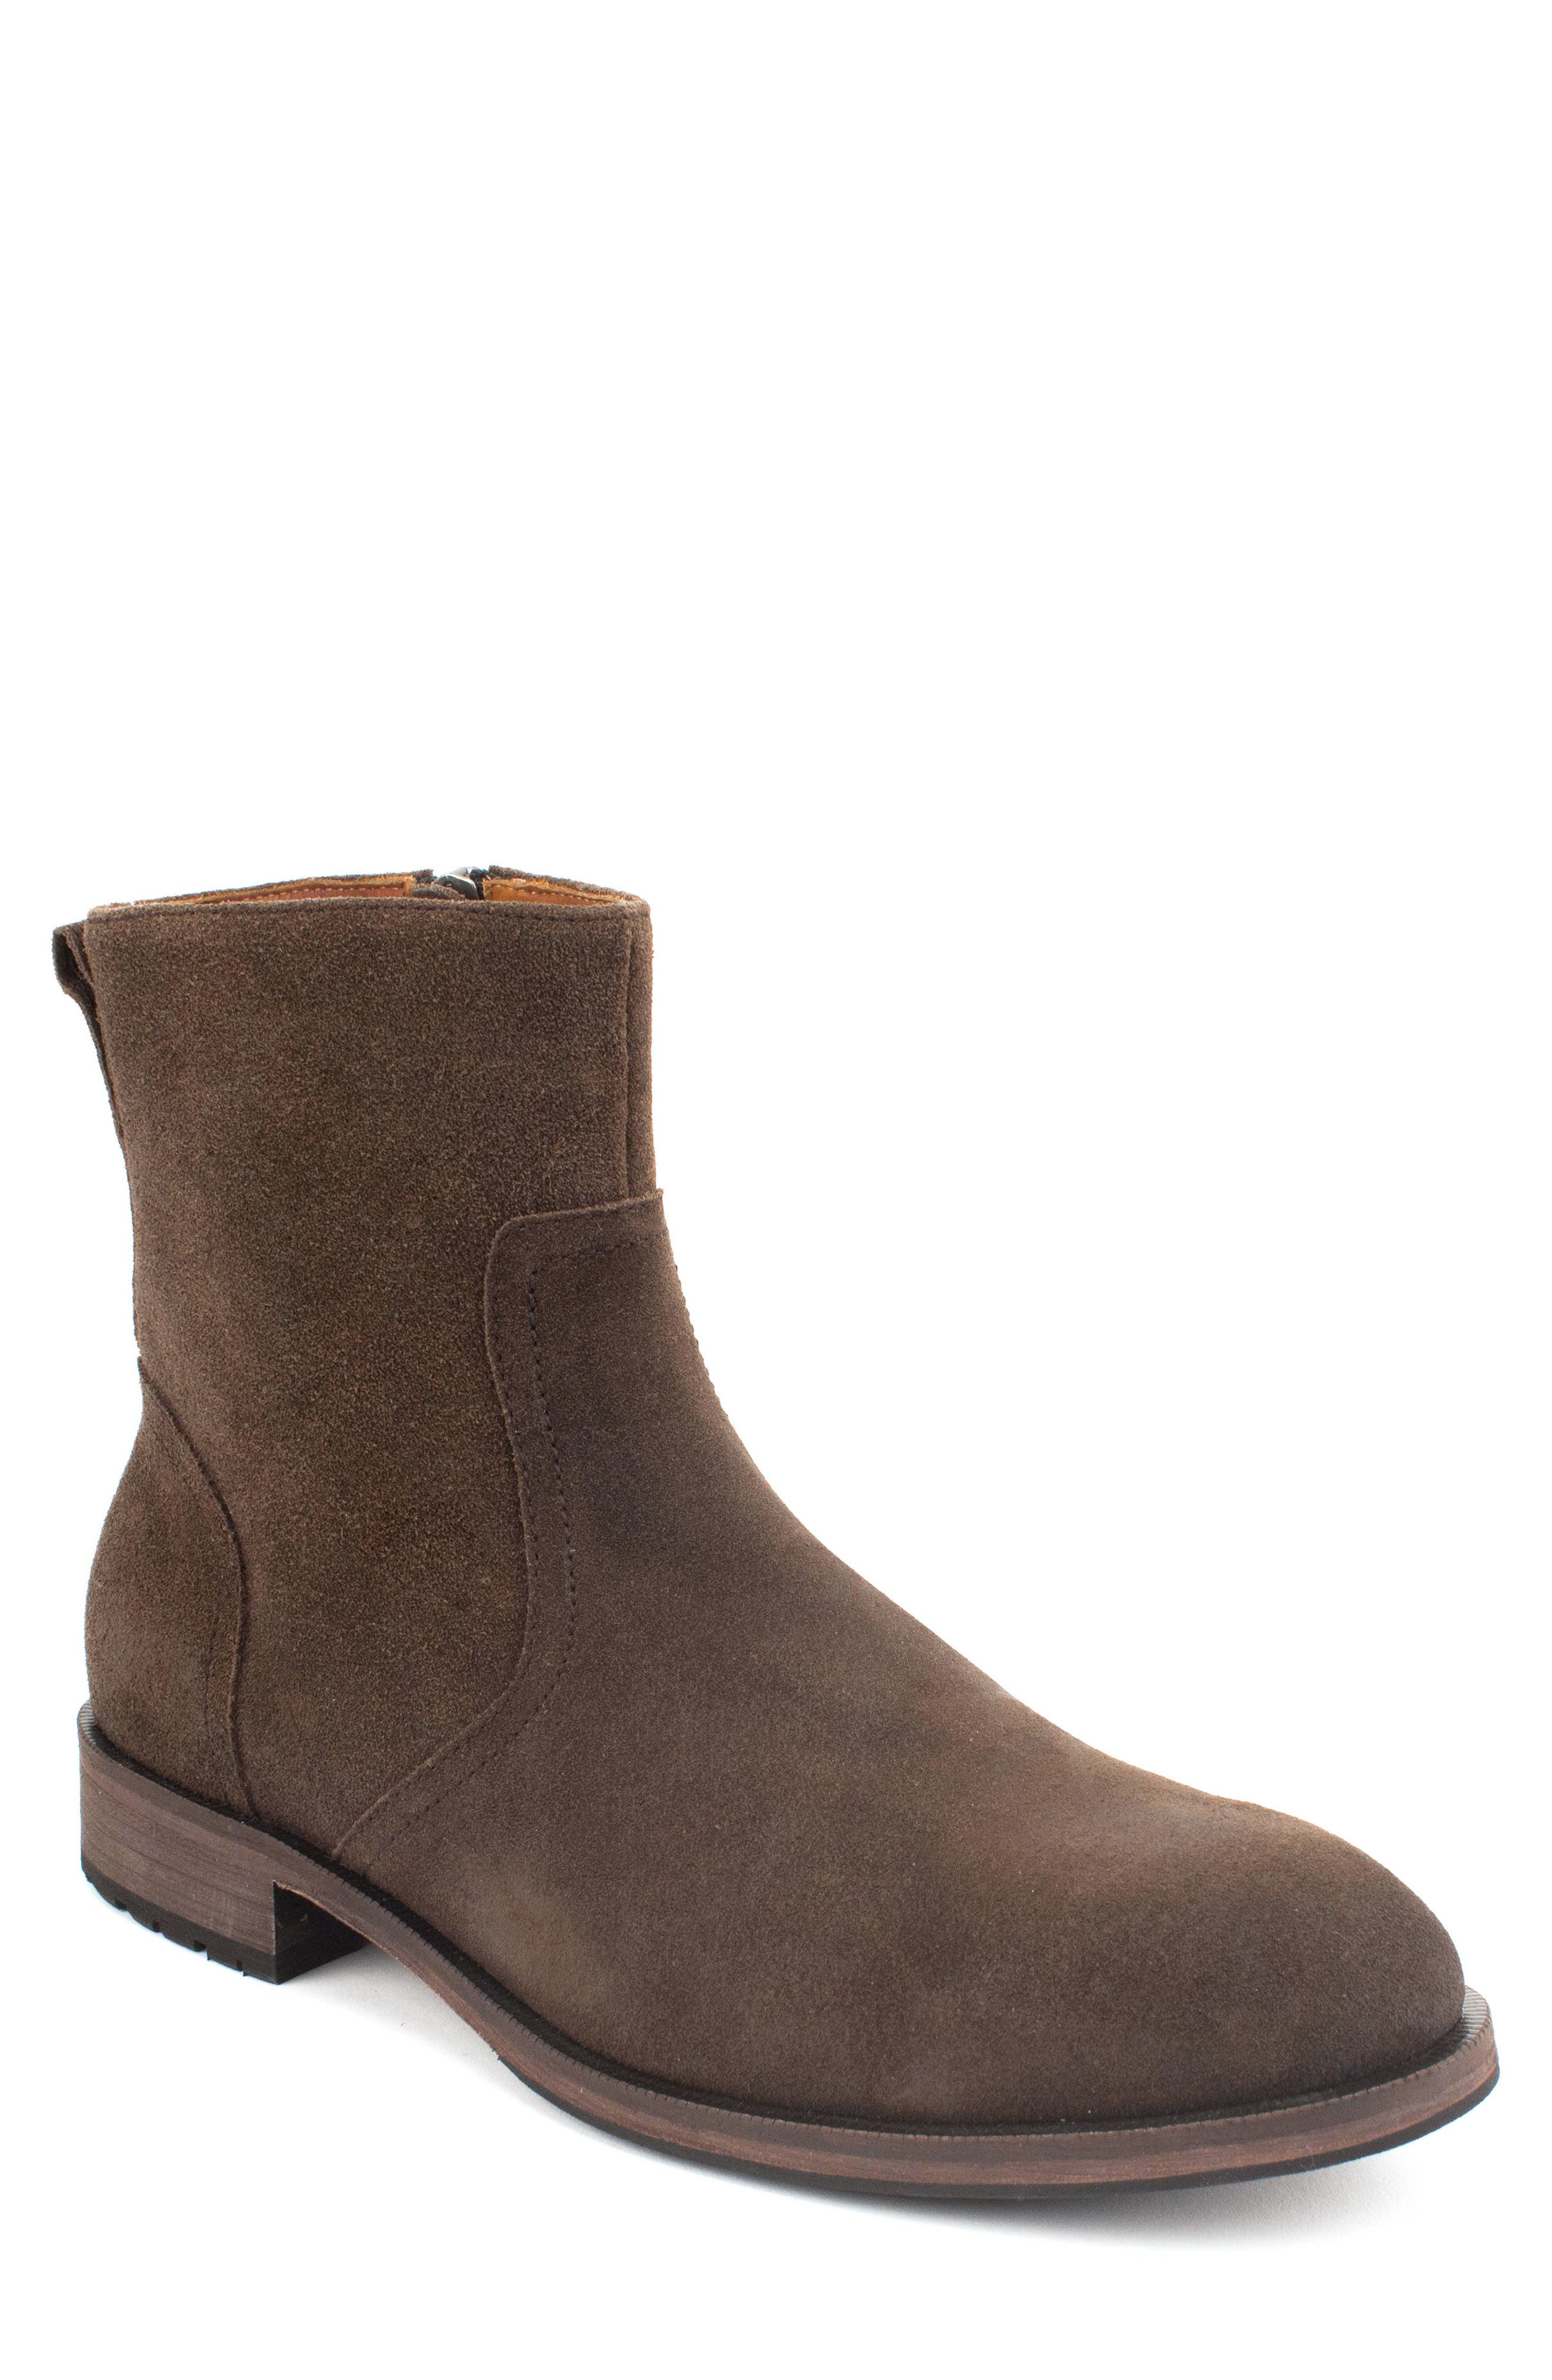 Fayette Plain Toe Zip Boot,                             Main thumbnail 1, color,                             CHOCOLATE SUEDE